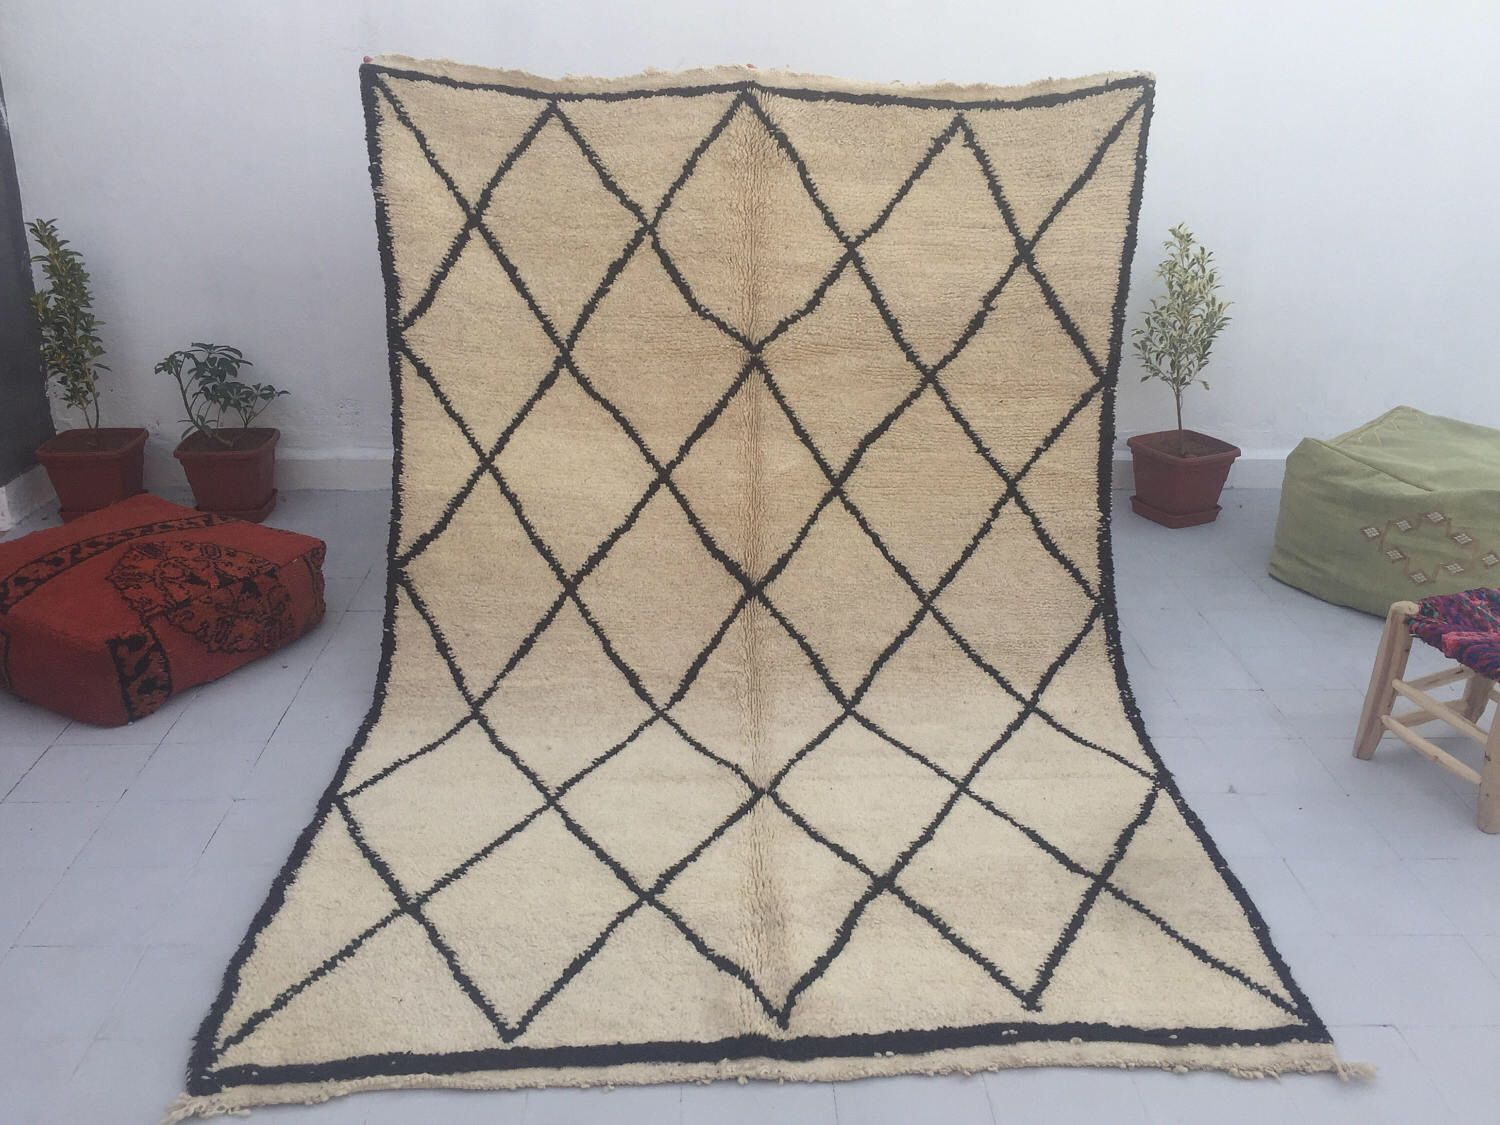 Moroccan Berber Beni Ouarin Rug 5x7 5 By Marrakechrugs On Etsy Https